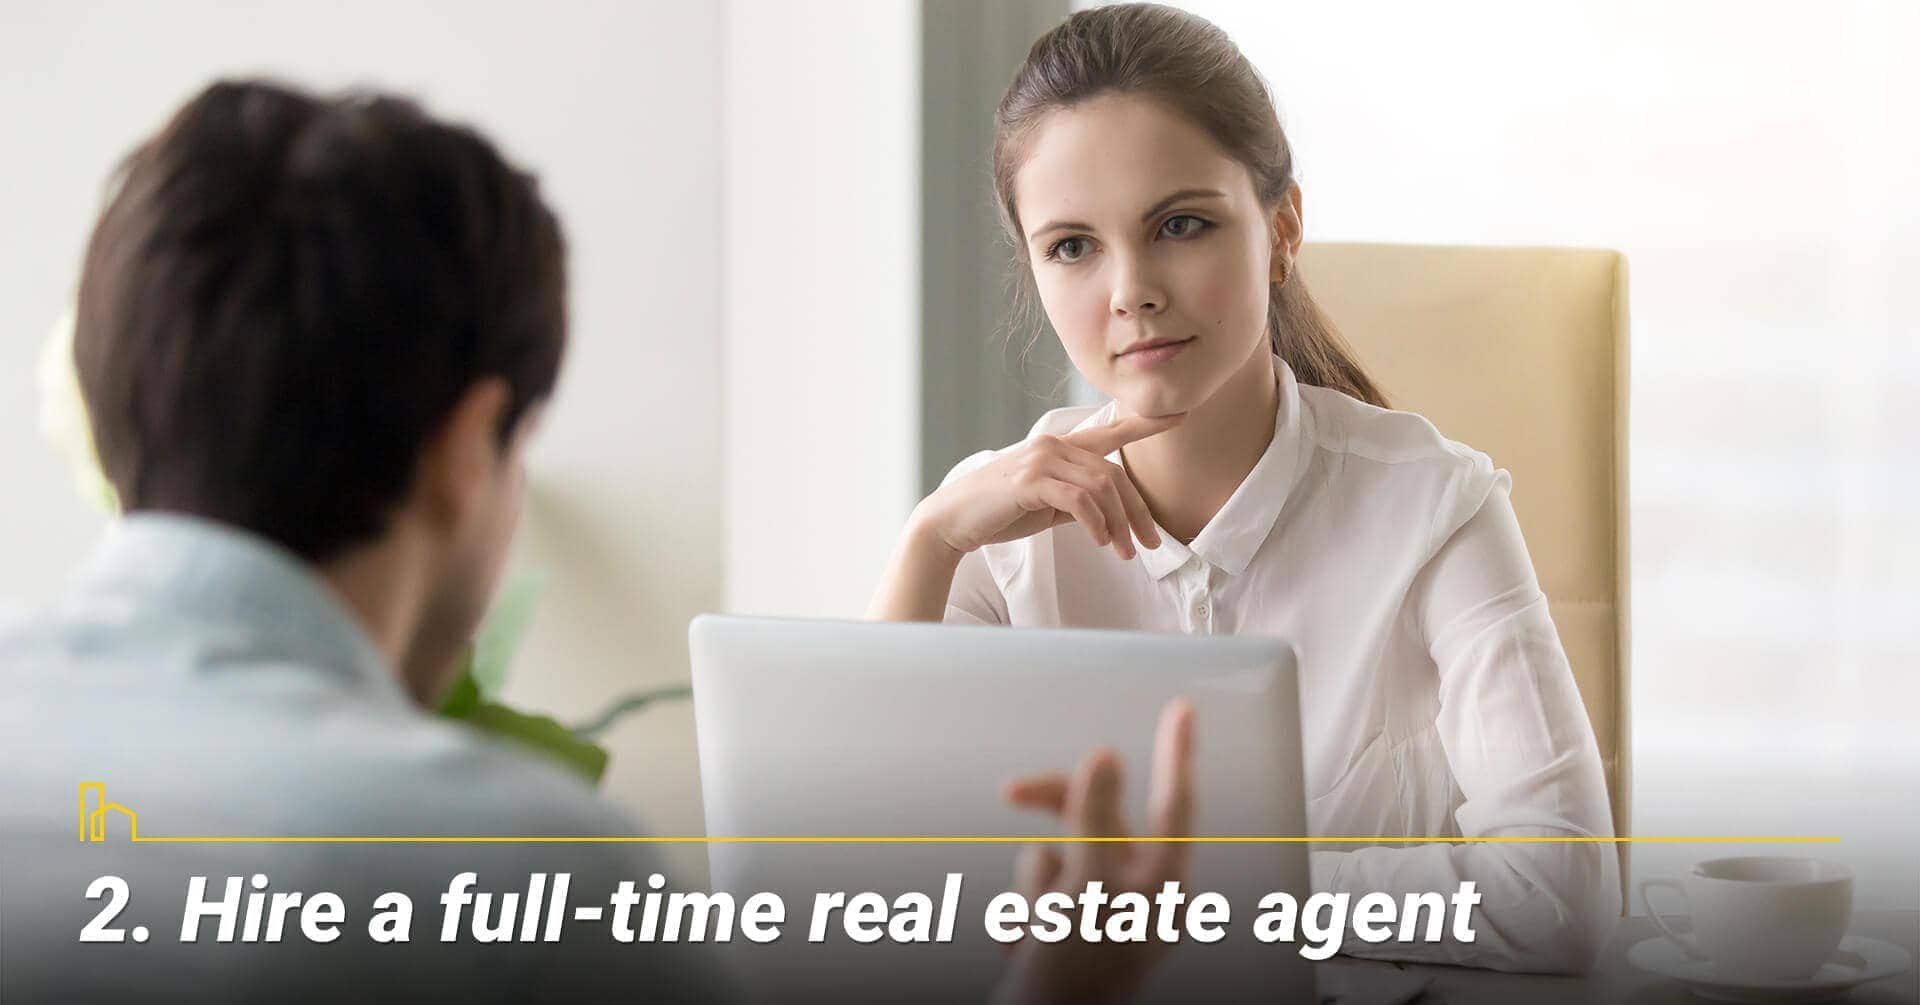 Hire a full-time real estate agent